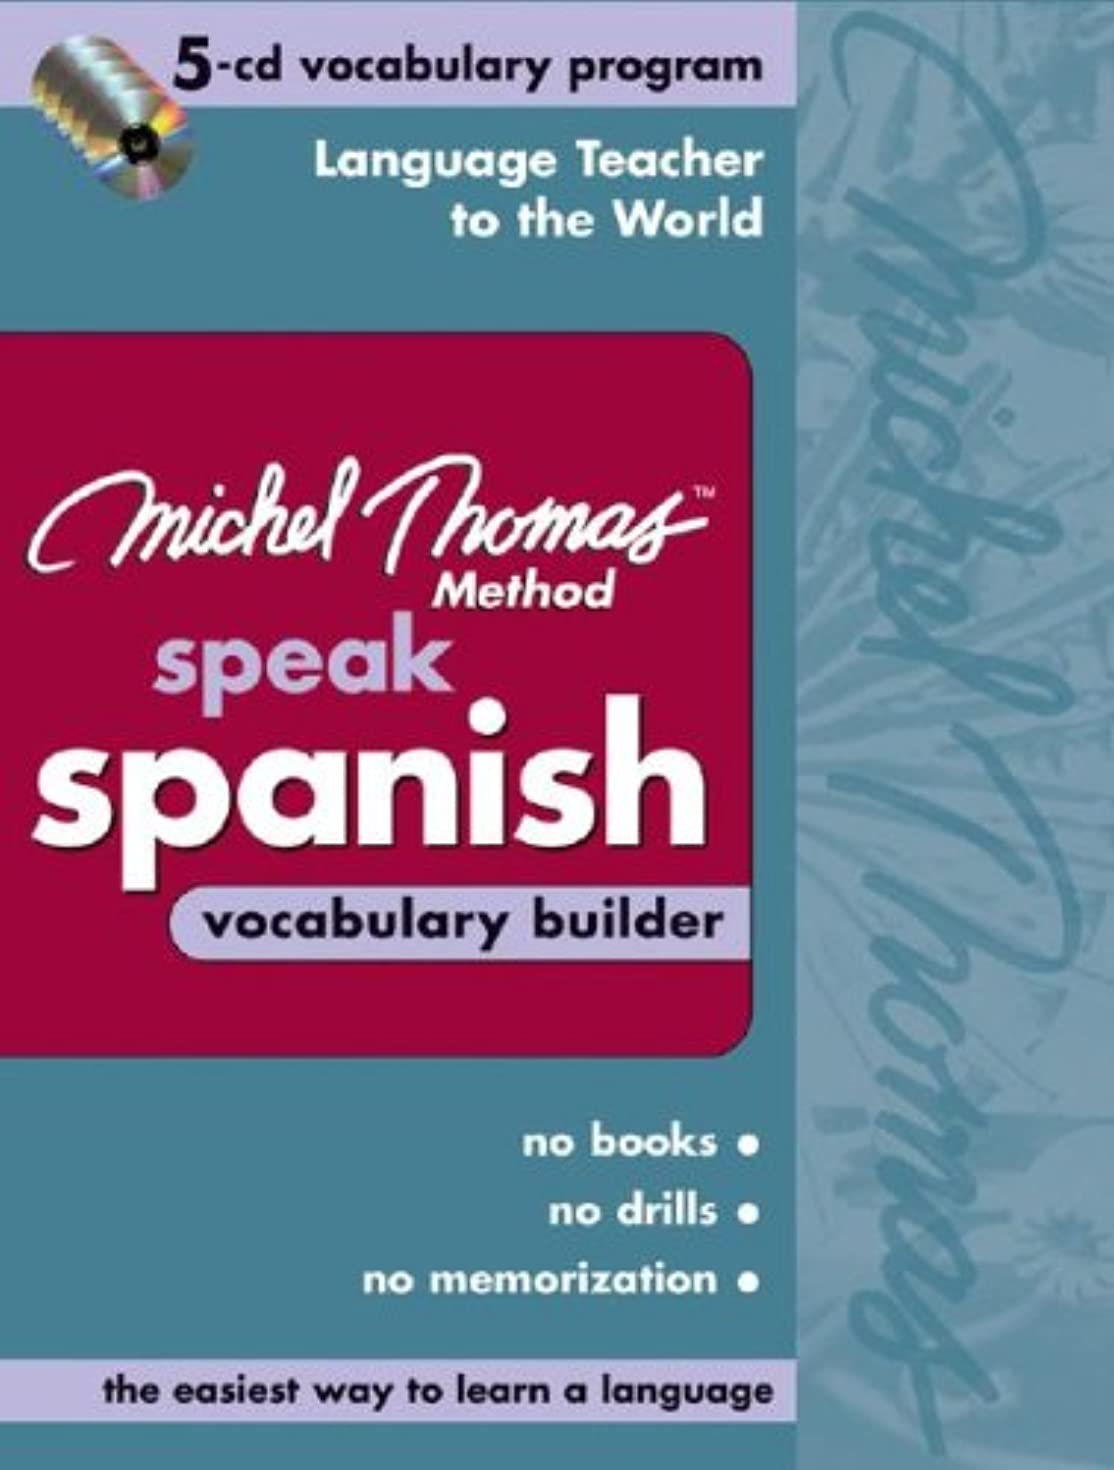 赤望まない震えるMichel Thomas Speak Spanish Vocabulary Builder: 5-CD Vocabulary Program (Michel Thomas Series)